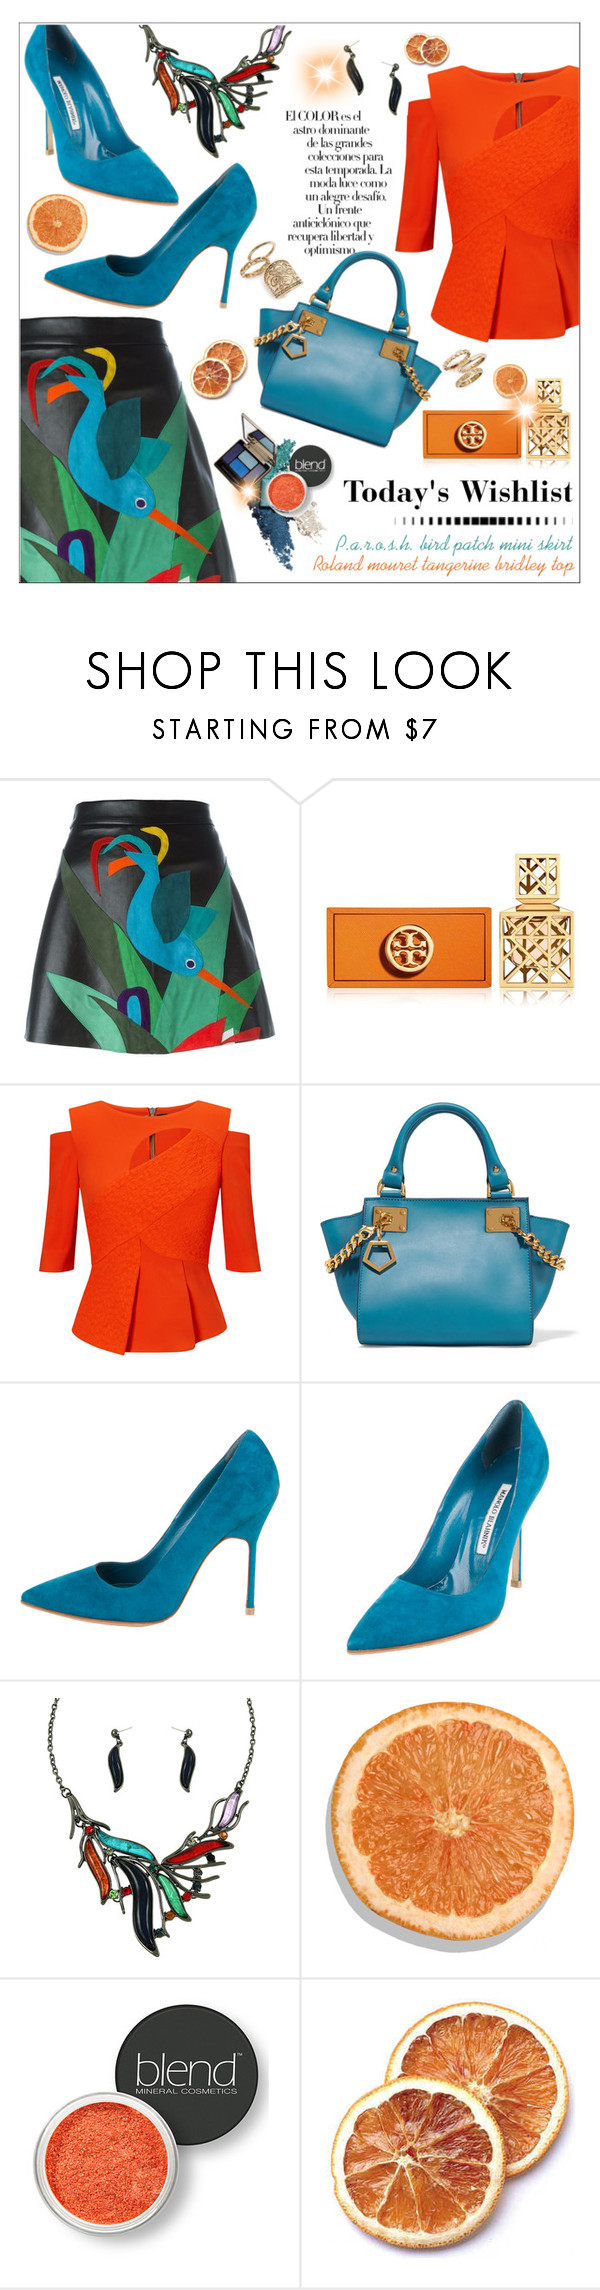 """Untitled #141"" by smaeri ❤ liked on Polyvore featuring P.A.R.O.S.H., Tory Burch, Arco, Roland Mouret, Sophie Hulme, Manolo Blahnik, Blend Minerals and Topshop"